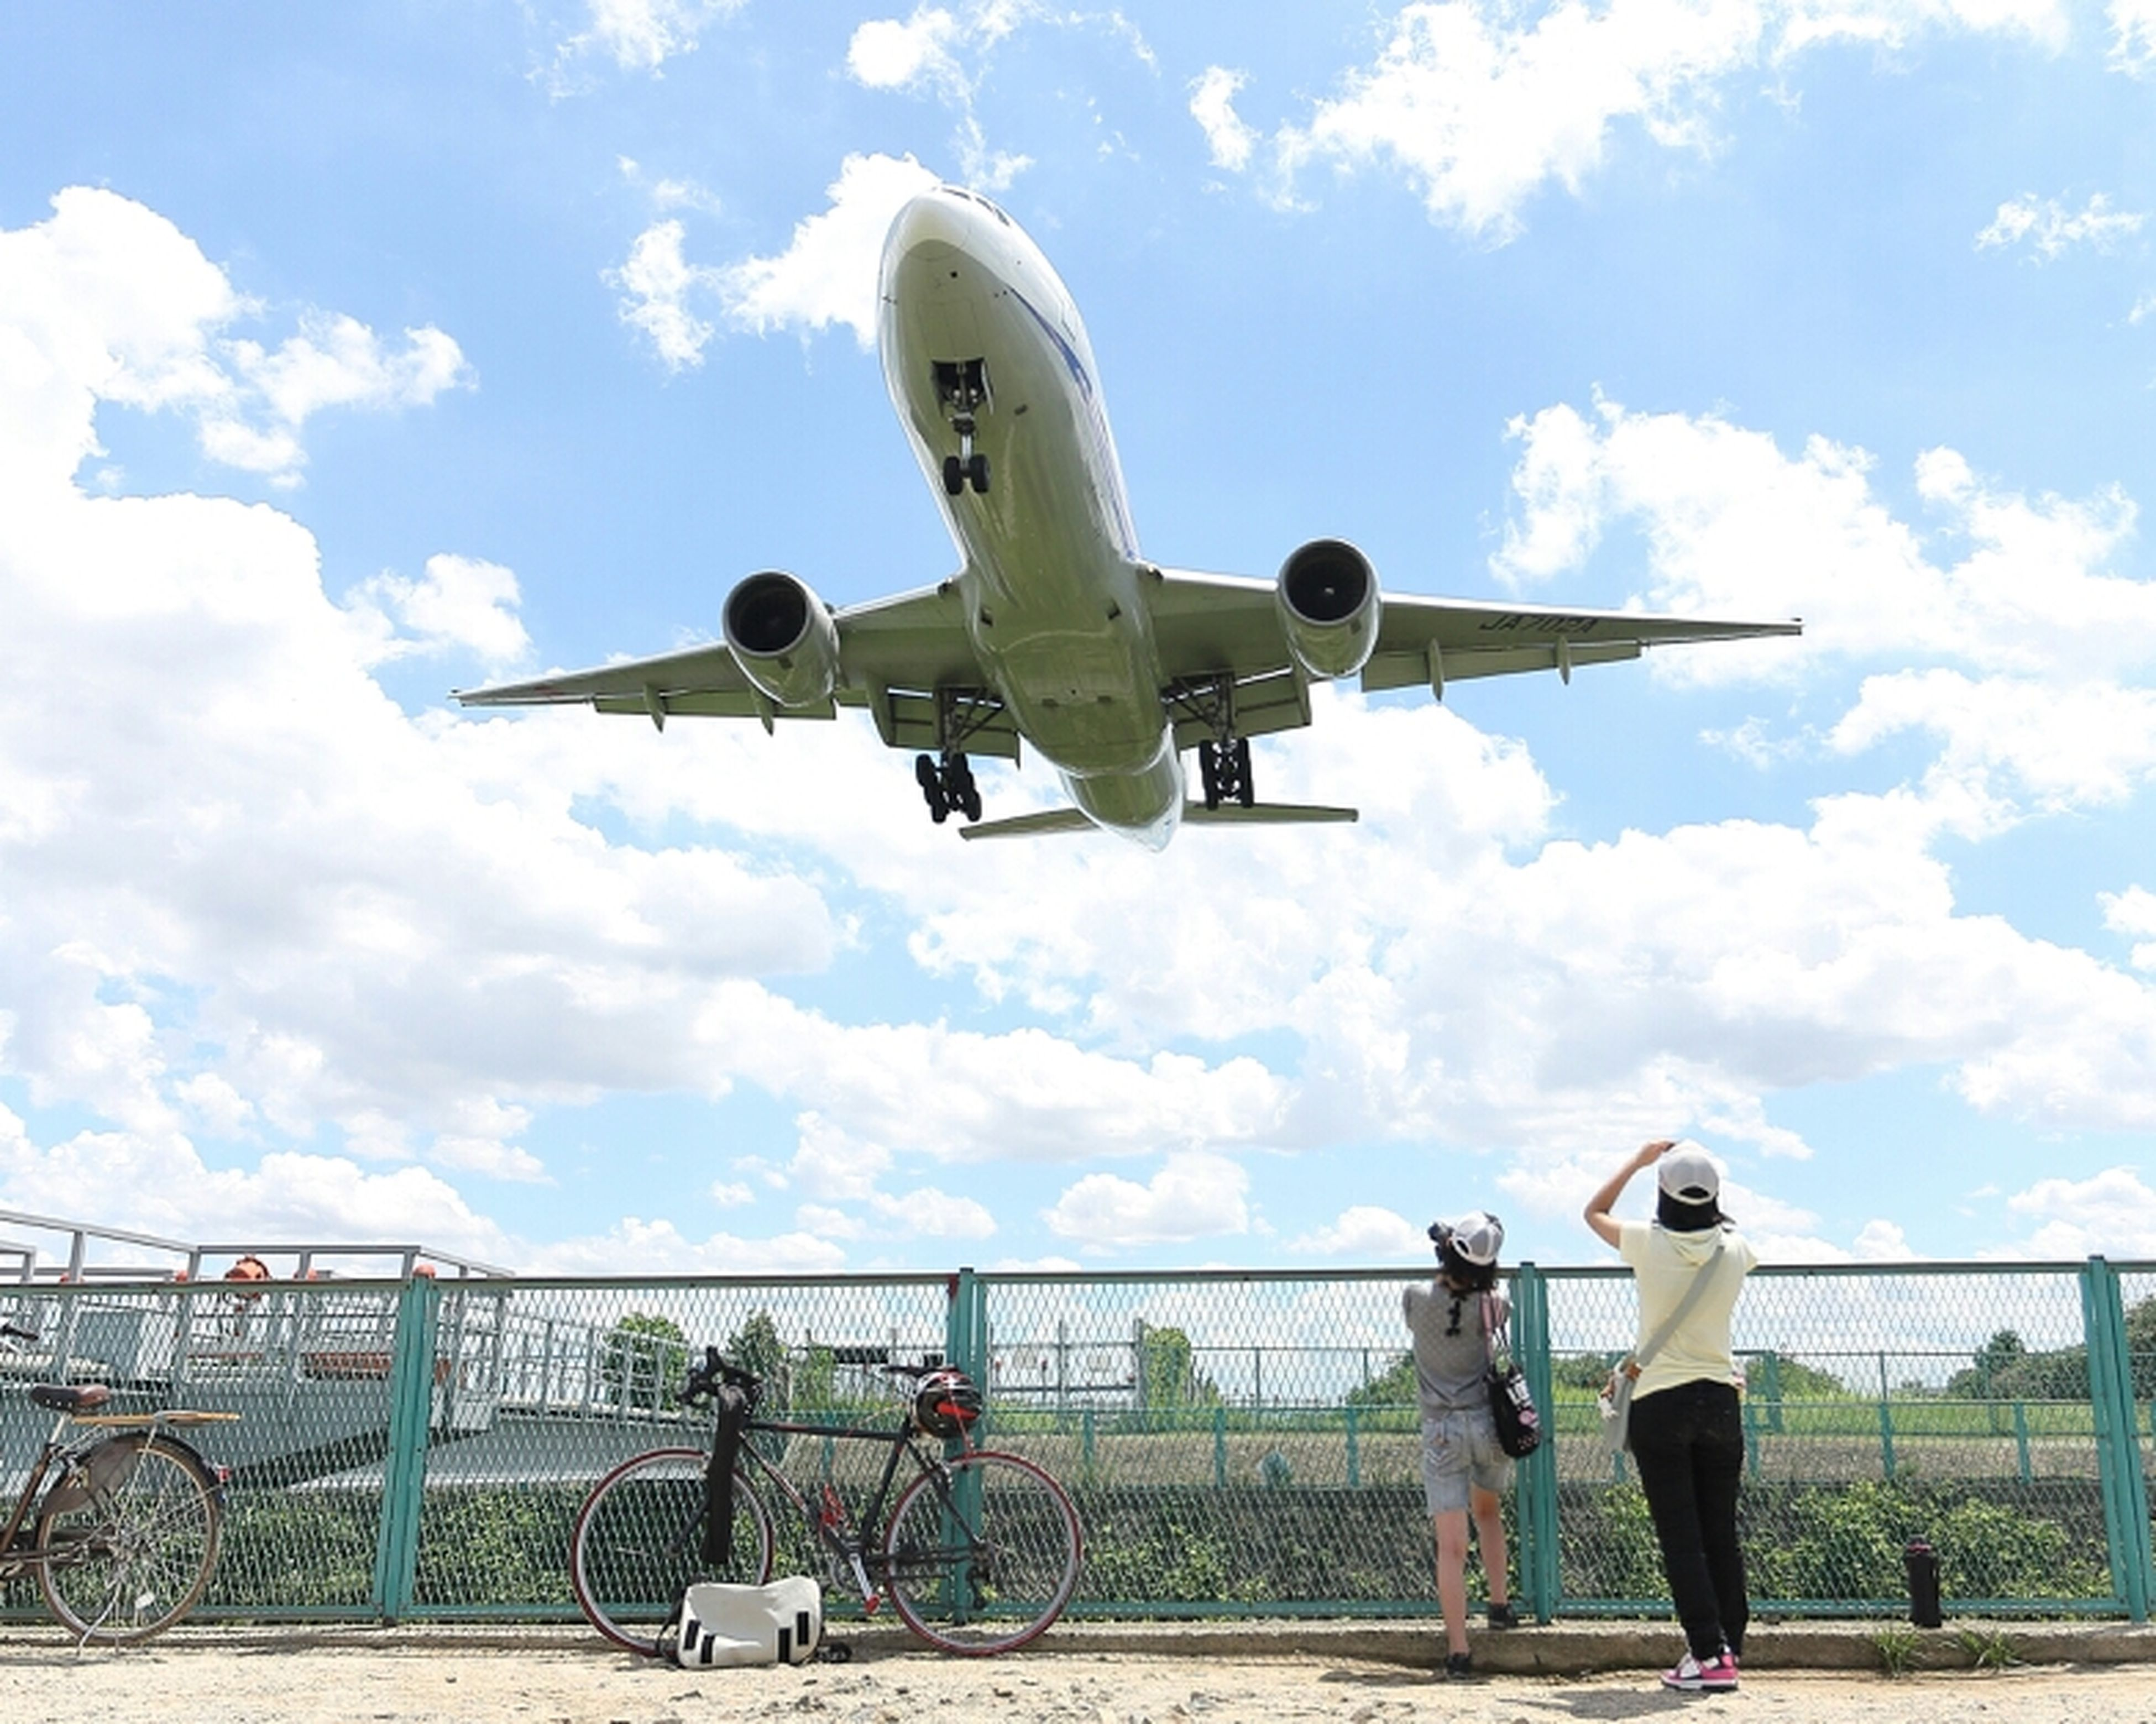 lifestyles, transportation, sky, airplane, travel, air vehicle, leisure activity, mode of transport, men, cloud - sky, mid-air, tourism, tourist, architecture, built structure, journey, full length, person